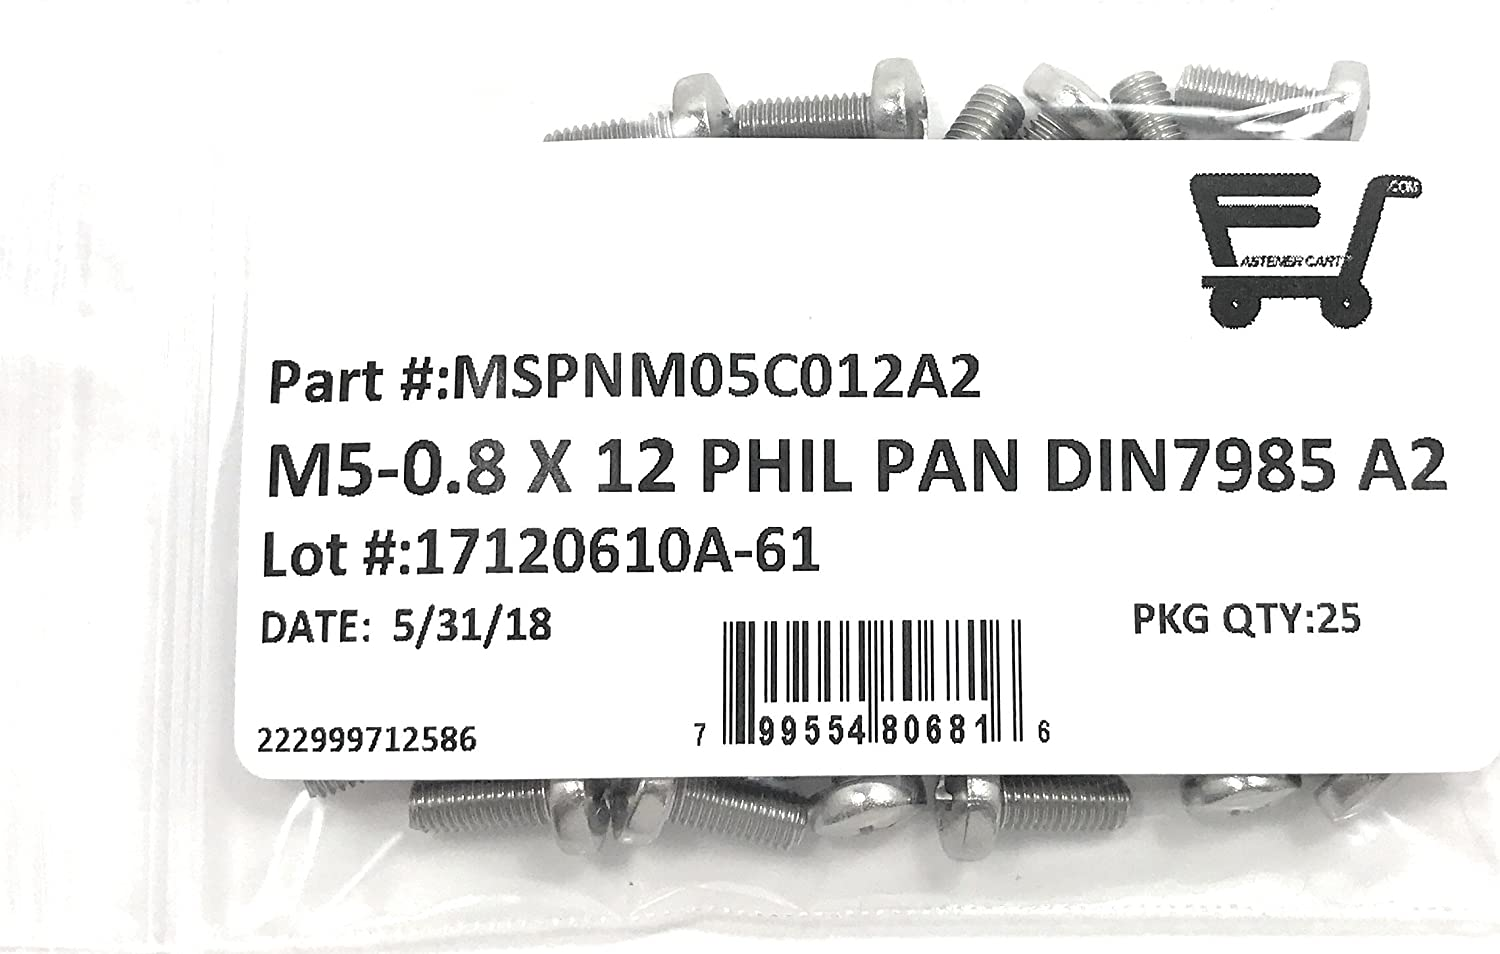 25 Pieces M5-0.8 x 12 Stainless Steel Phillips Pan Head Machine Screw DIN7985 A2 M5x12